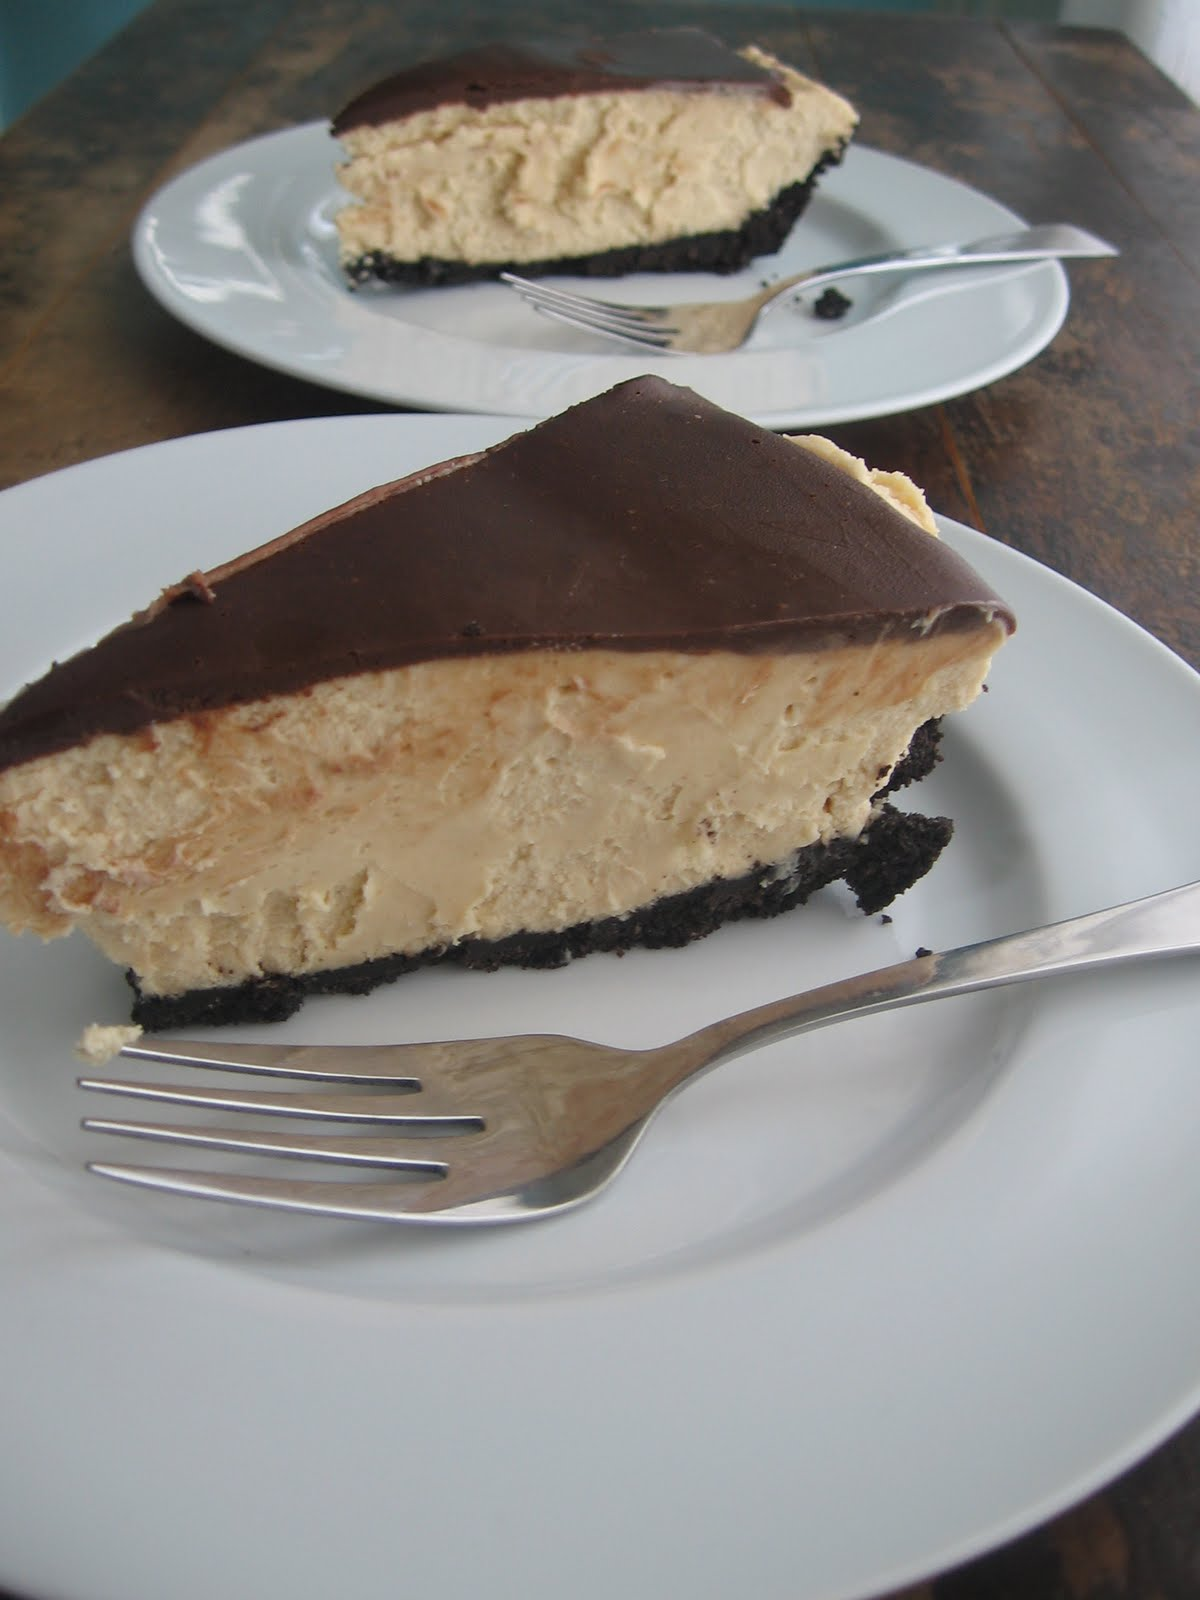 sweetsugarbean: Chocolate Peanut Butter Pie! Oh My!